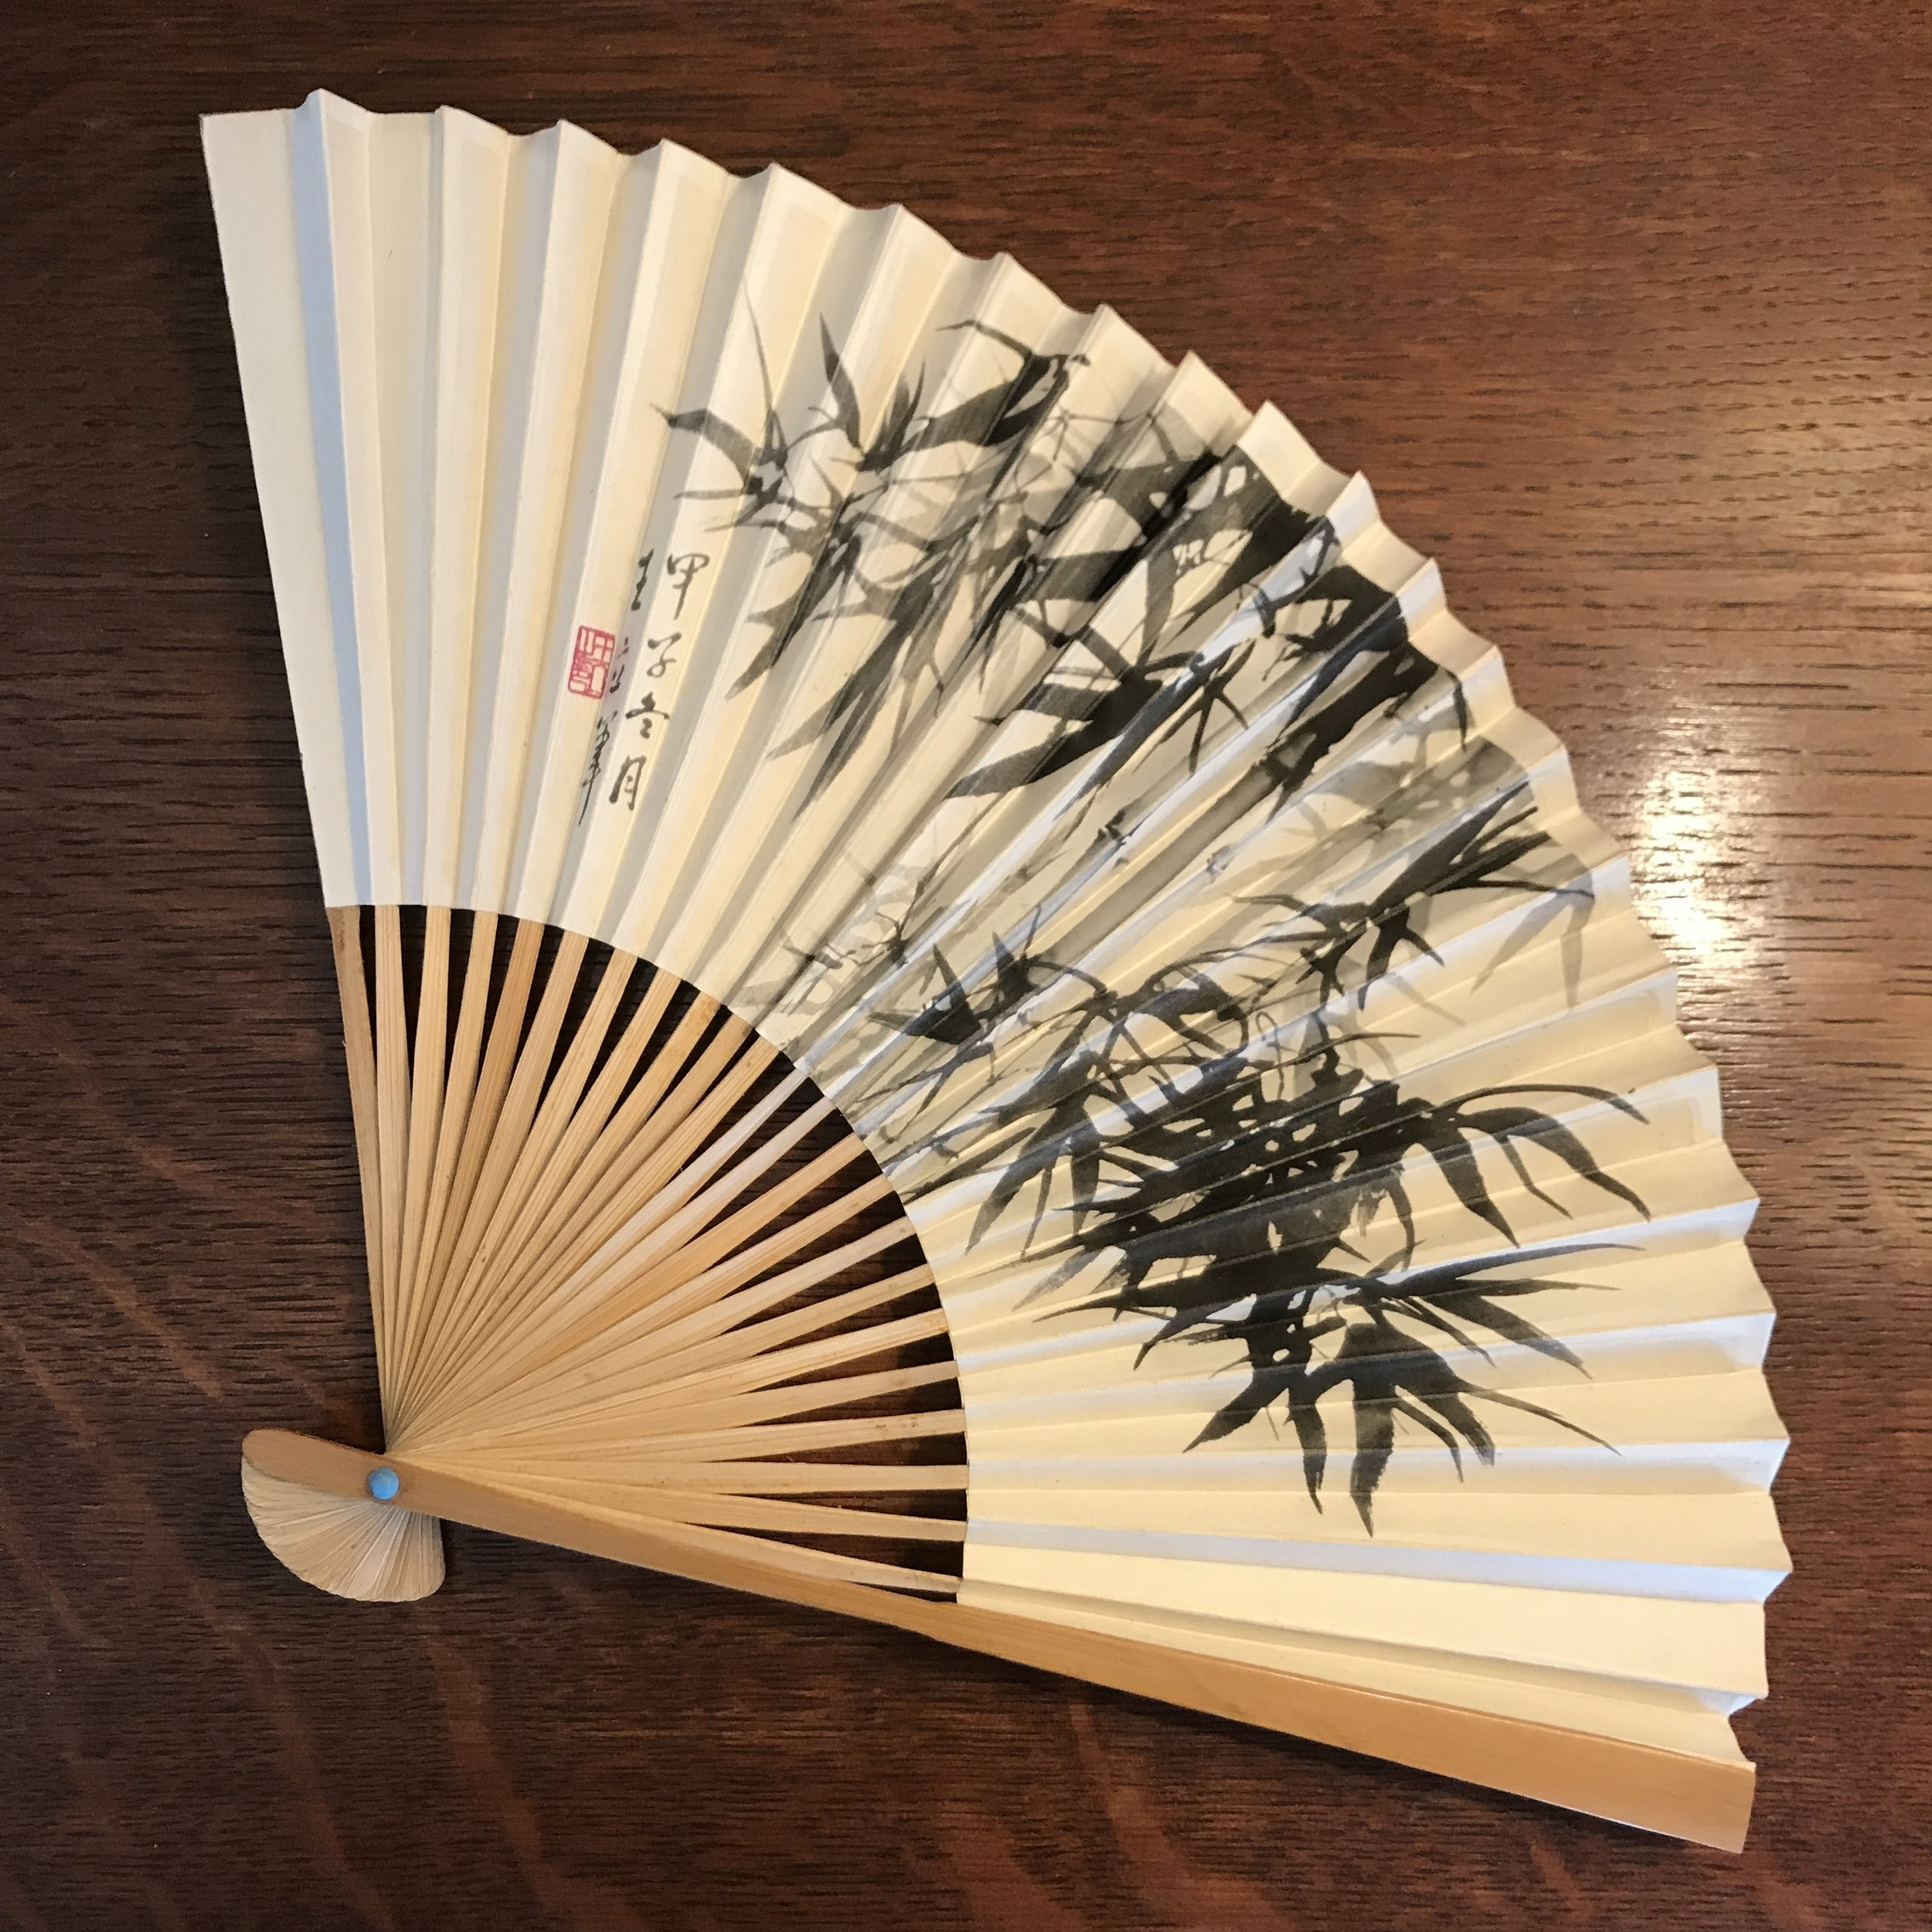 Vintage Chinese Paper Fan - Chinese Aviation Administration of China fans from the late 40s to the late 80s. The paper and bamboo show some age spots upon closer inspection. A little over 9